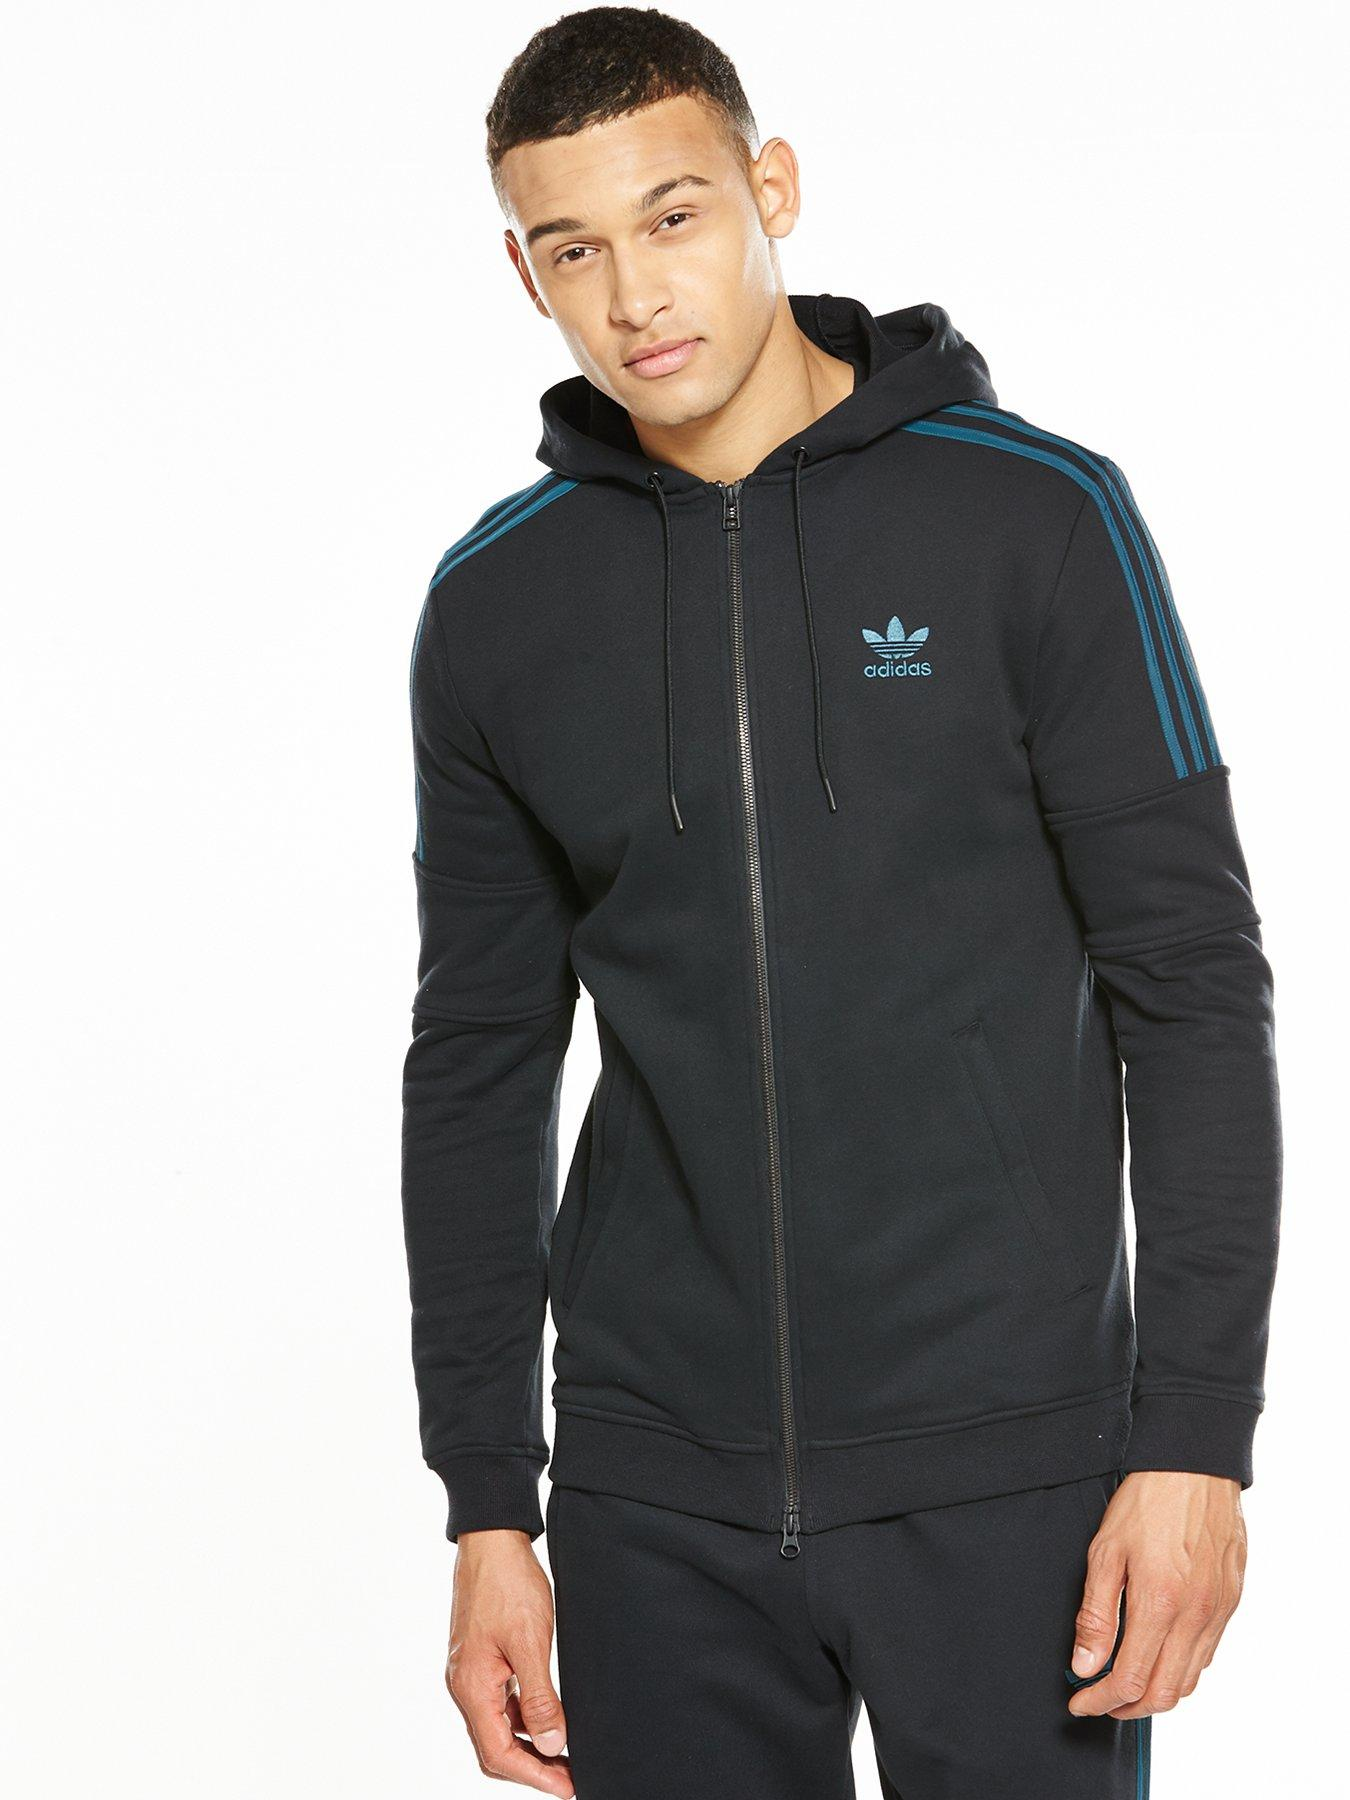 Will agitate against mamata banerjee for attacking our workers bjp the indian express - Adidas Originals Zip Up Hoodie